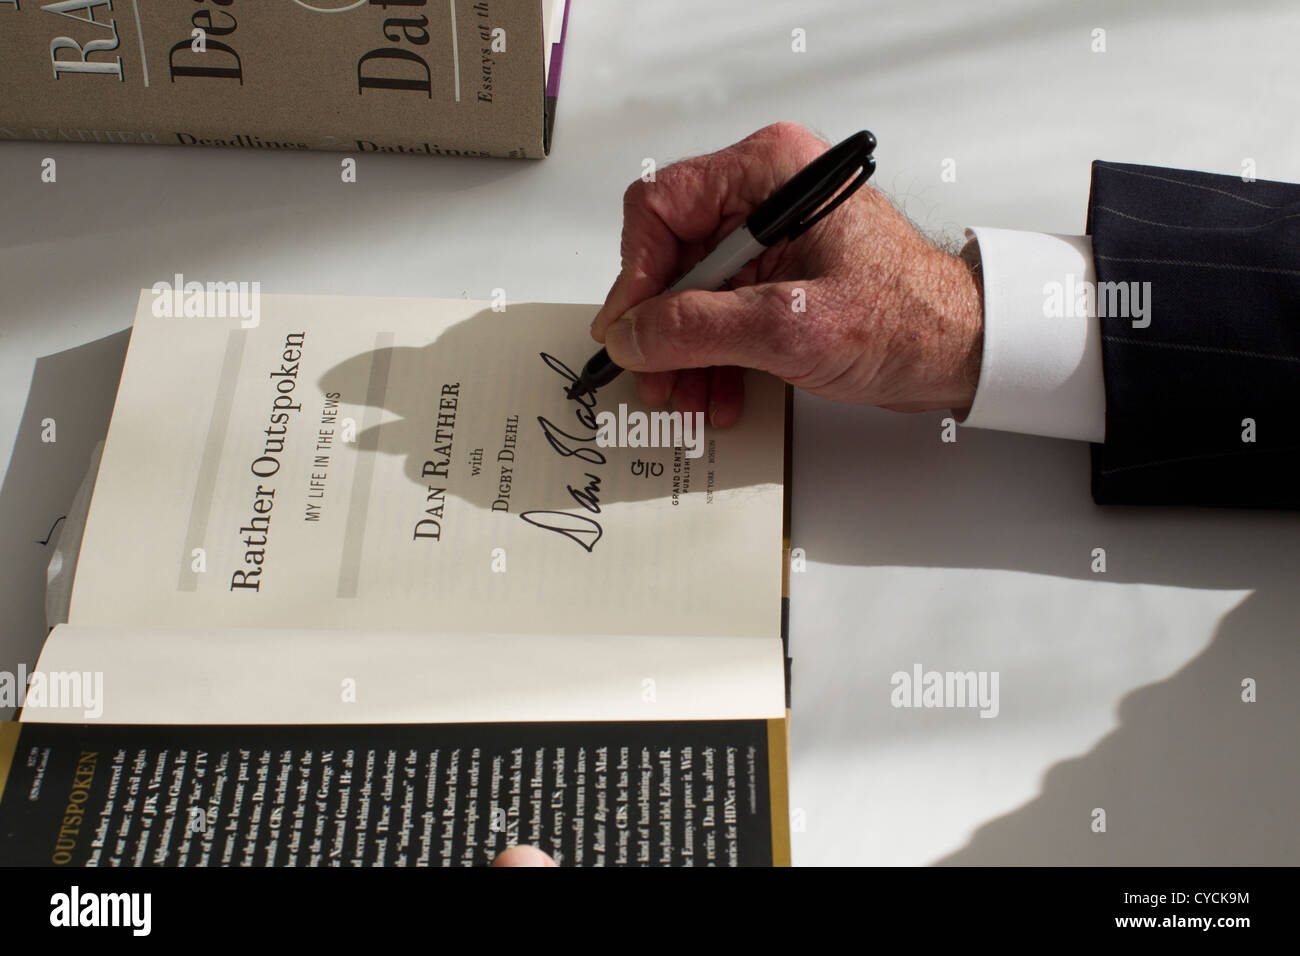 Journalist Dan Rather signs a copy of his book 'Rather Outspoken' for a fan at the Texas Book Festival in - Stock Image